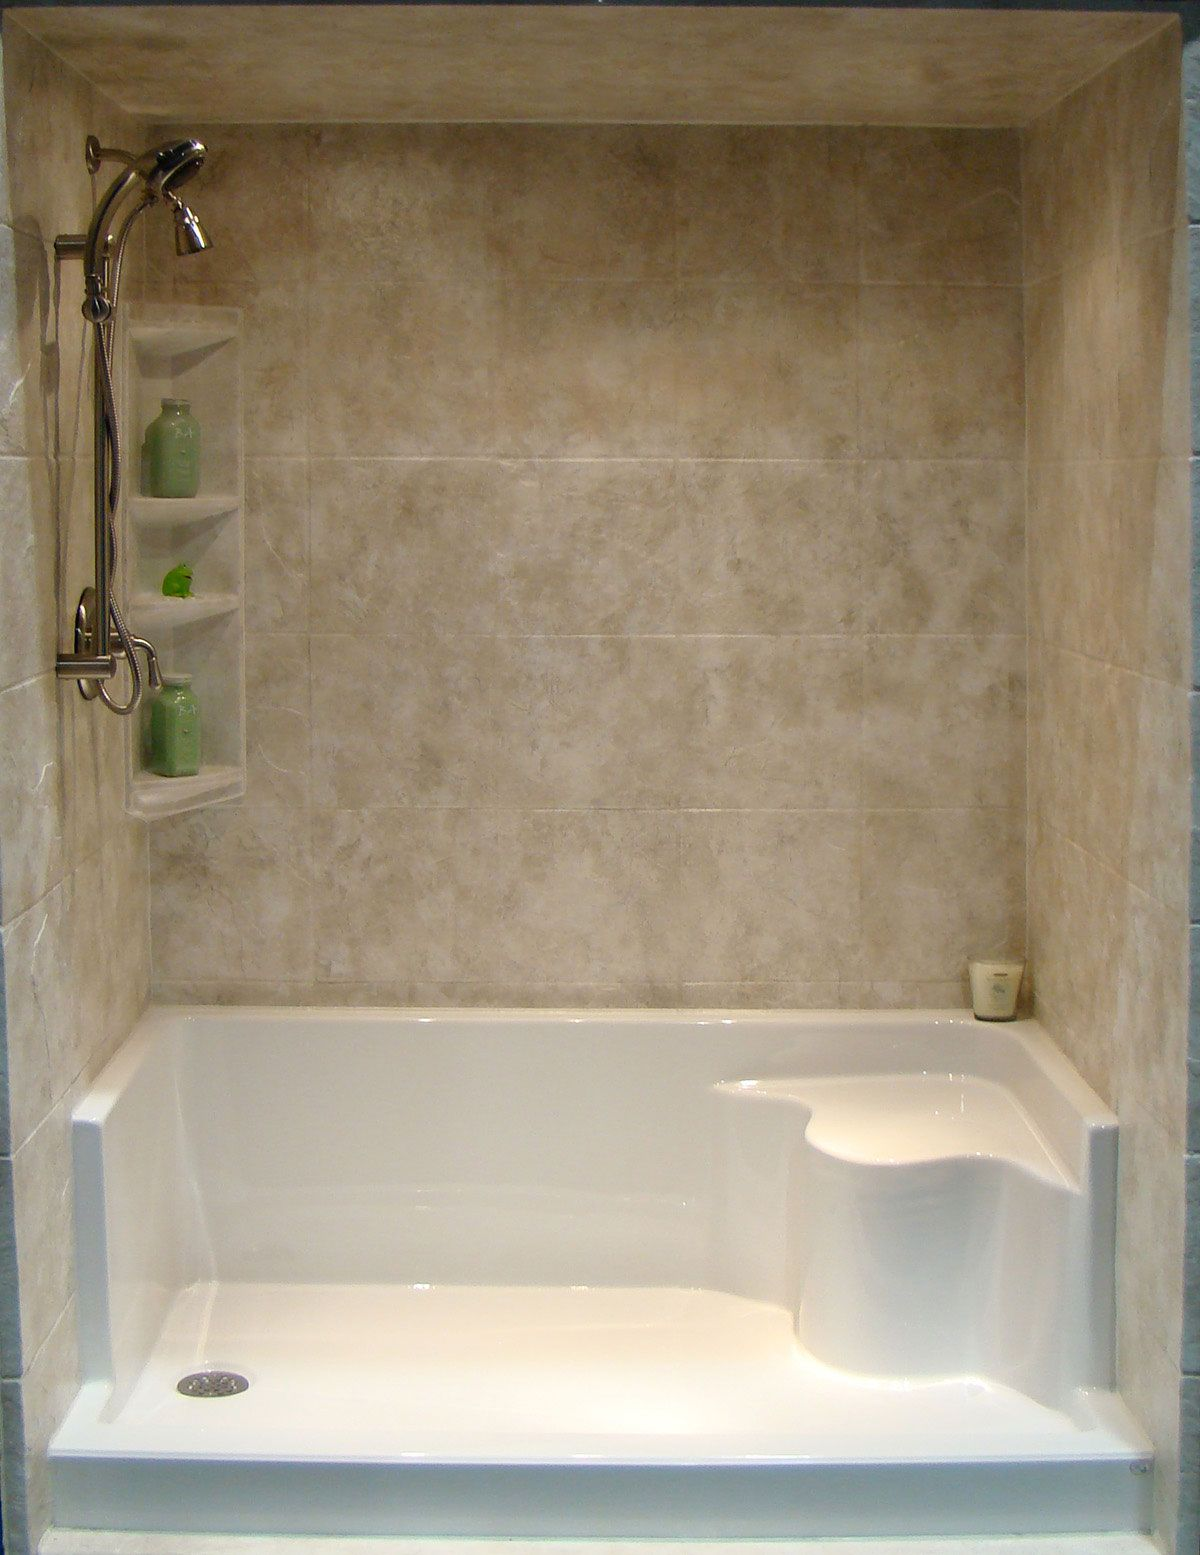 Tub an shower conversion ideas bathtub refinishing tub for Redo bathtub